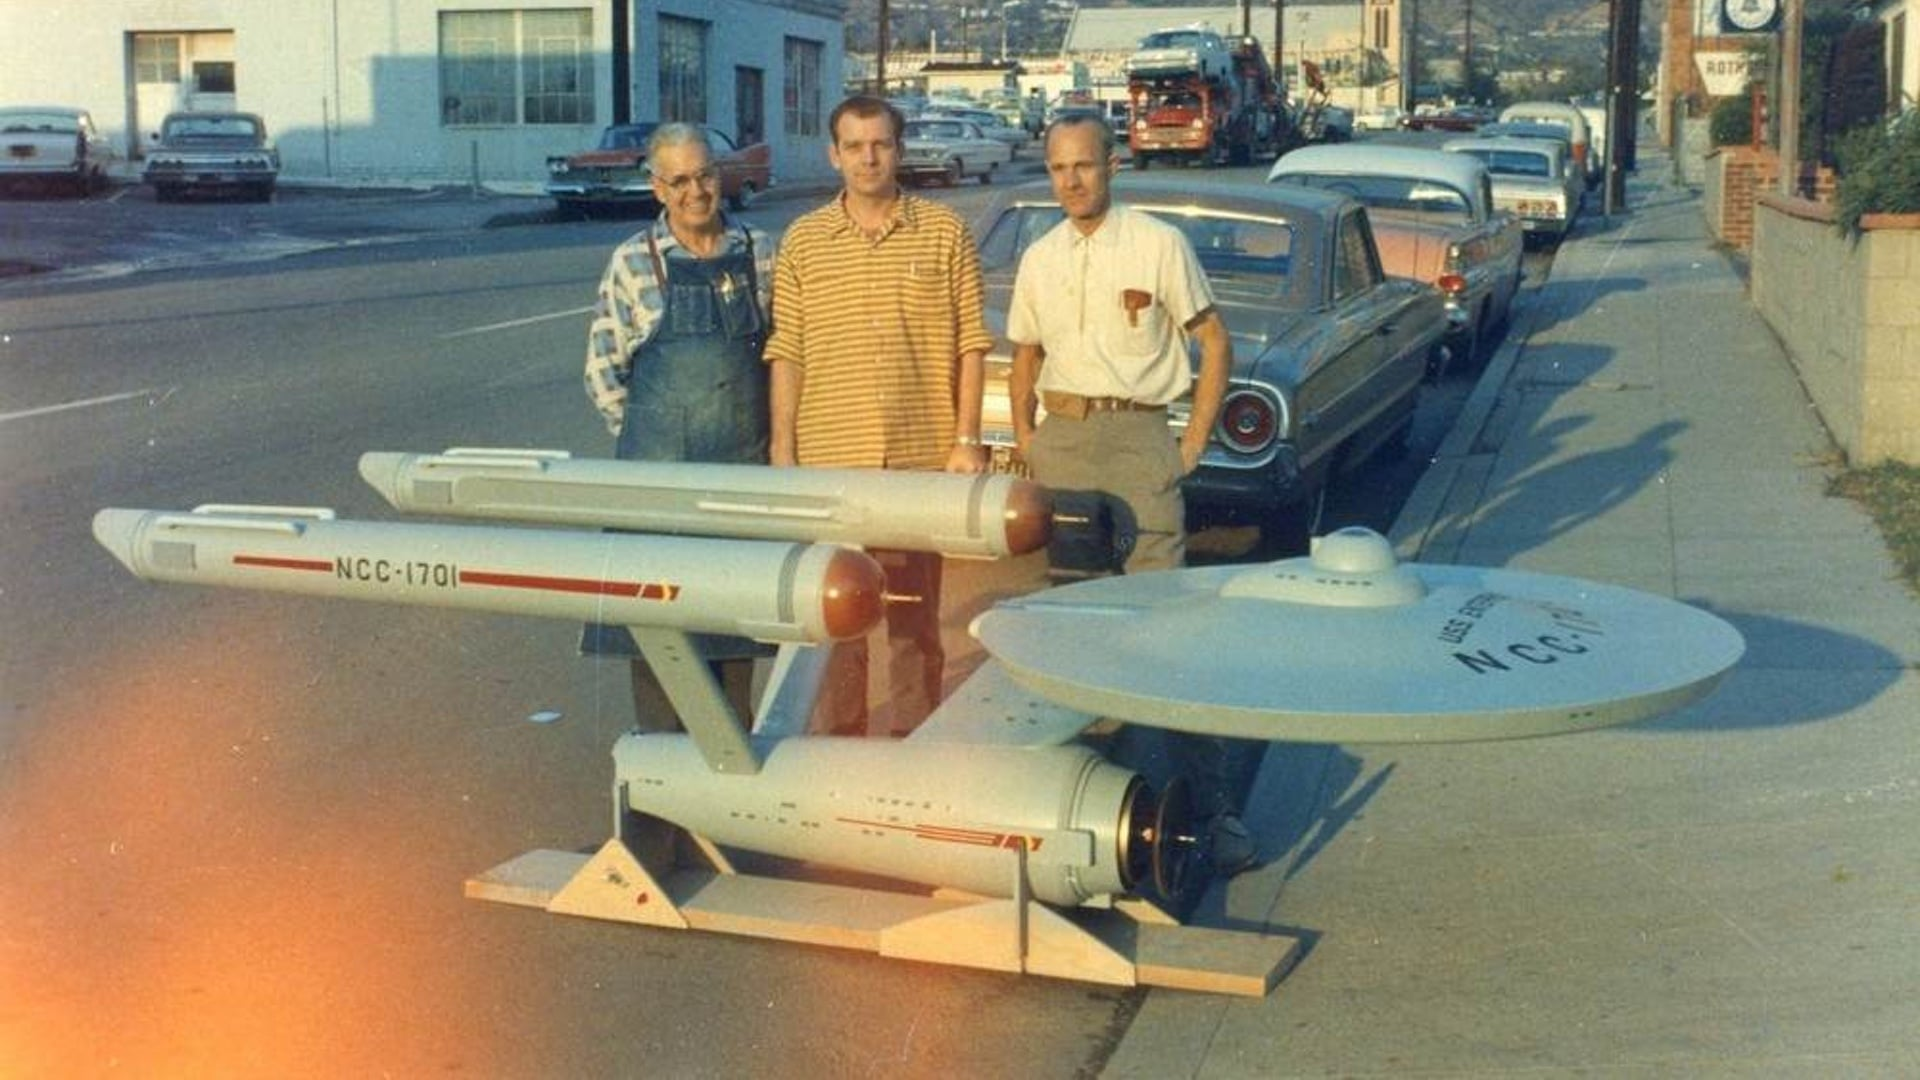 Photo of original star trek enterprise model with the men who built youve gotta check out this photo featuring the original uss enterprise model with the three men who build it this photo was taken in 1964 publicscrutiny Gallery